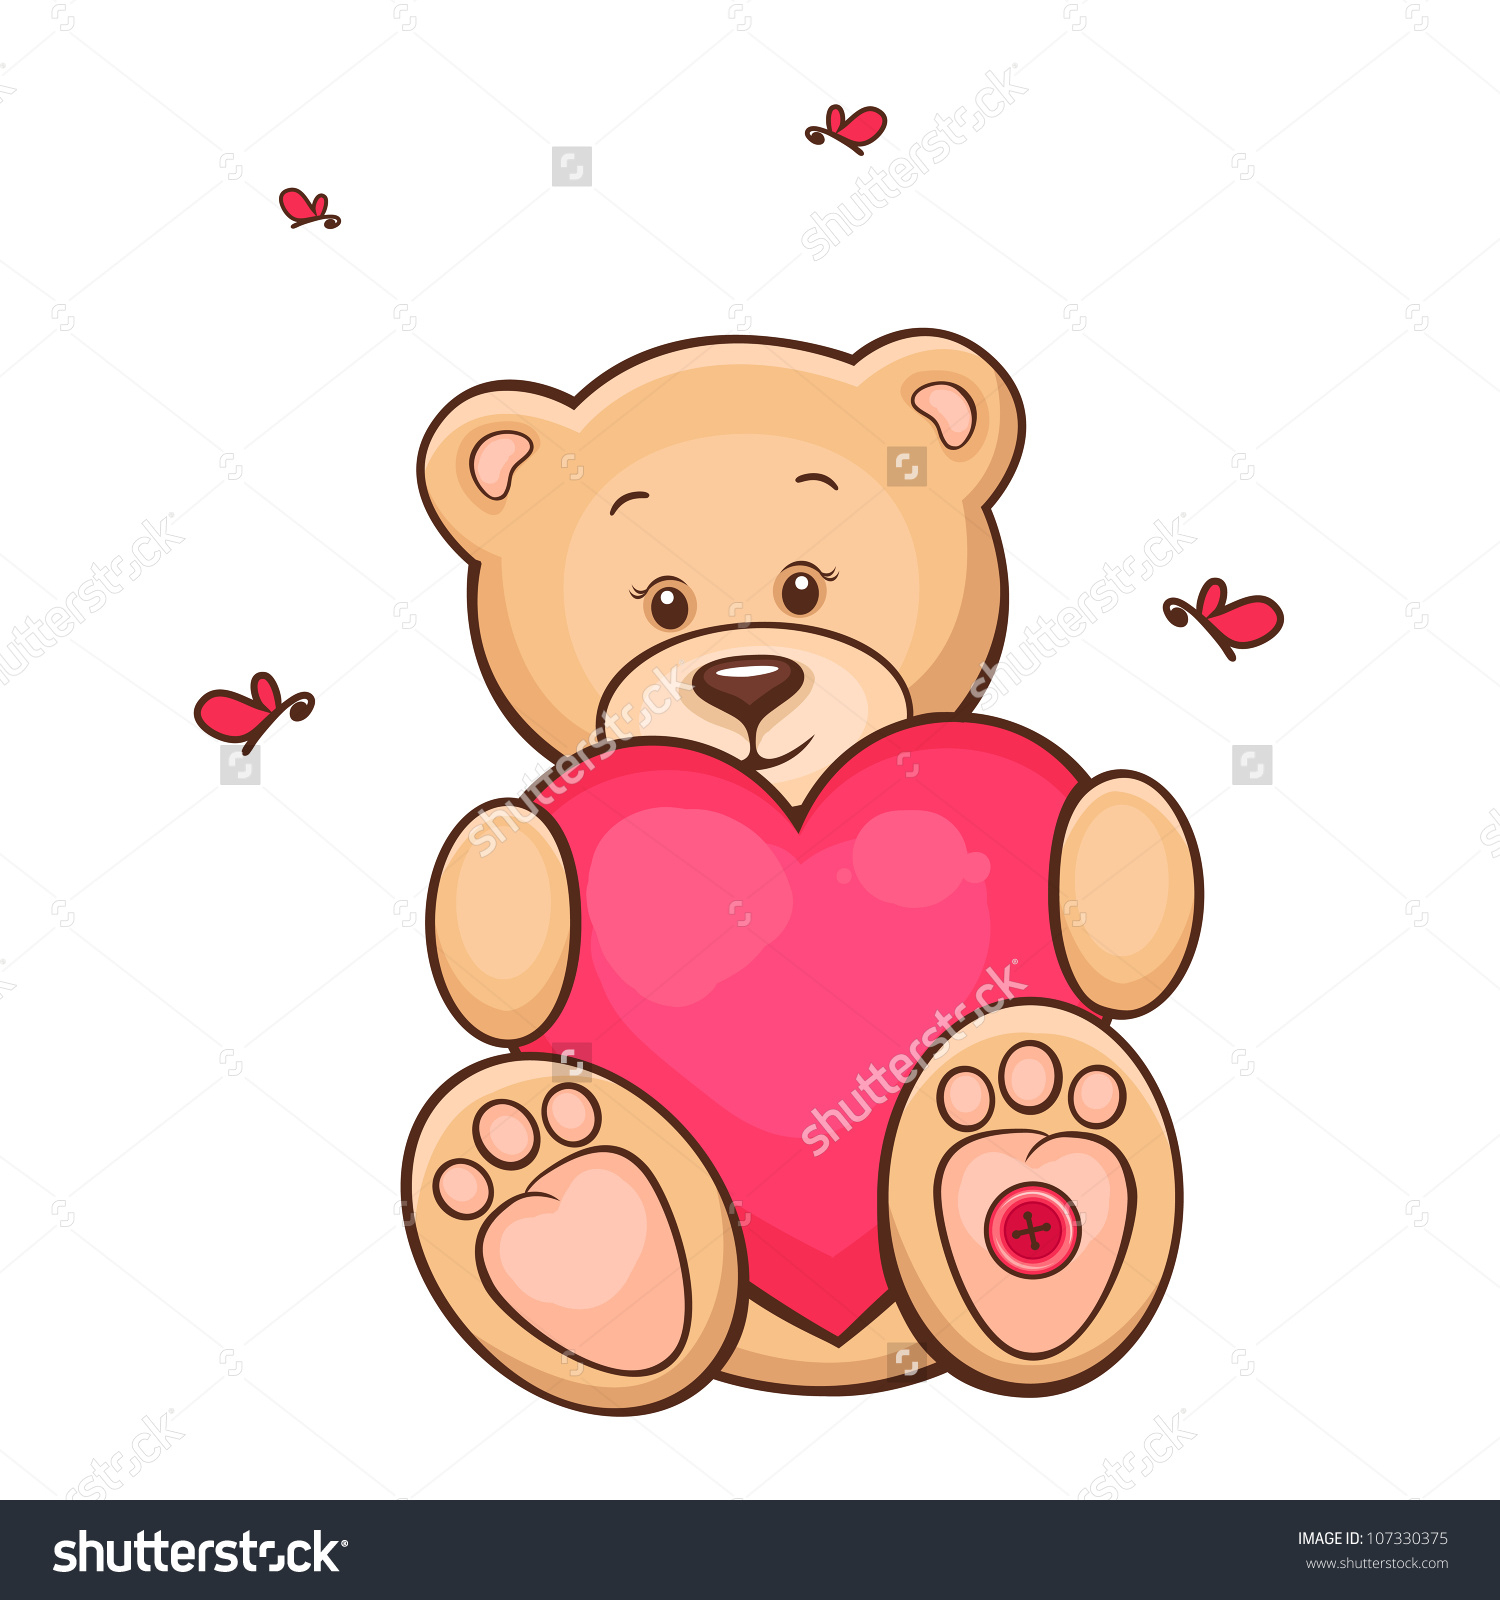 1500x1600 Cute Teddy Bear Sketch Drawing With Heart Pictures Cute Teddy Bear